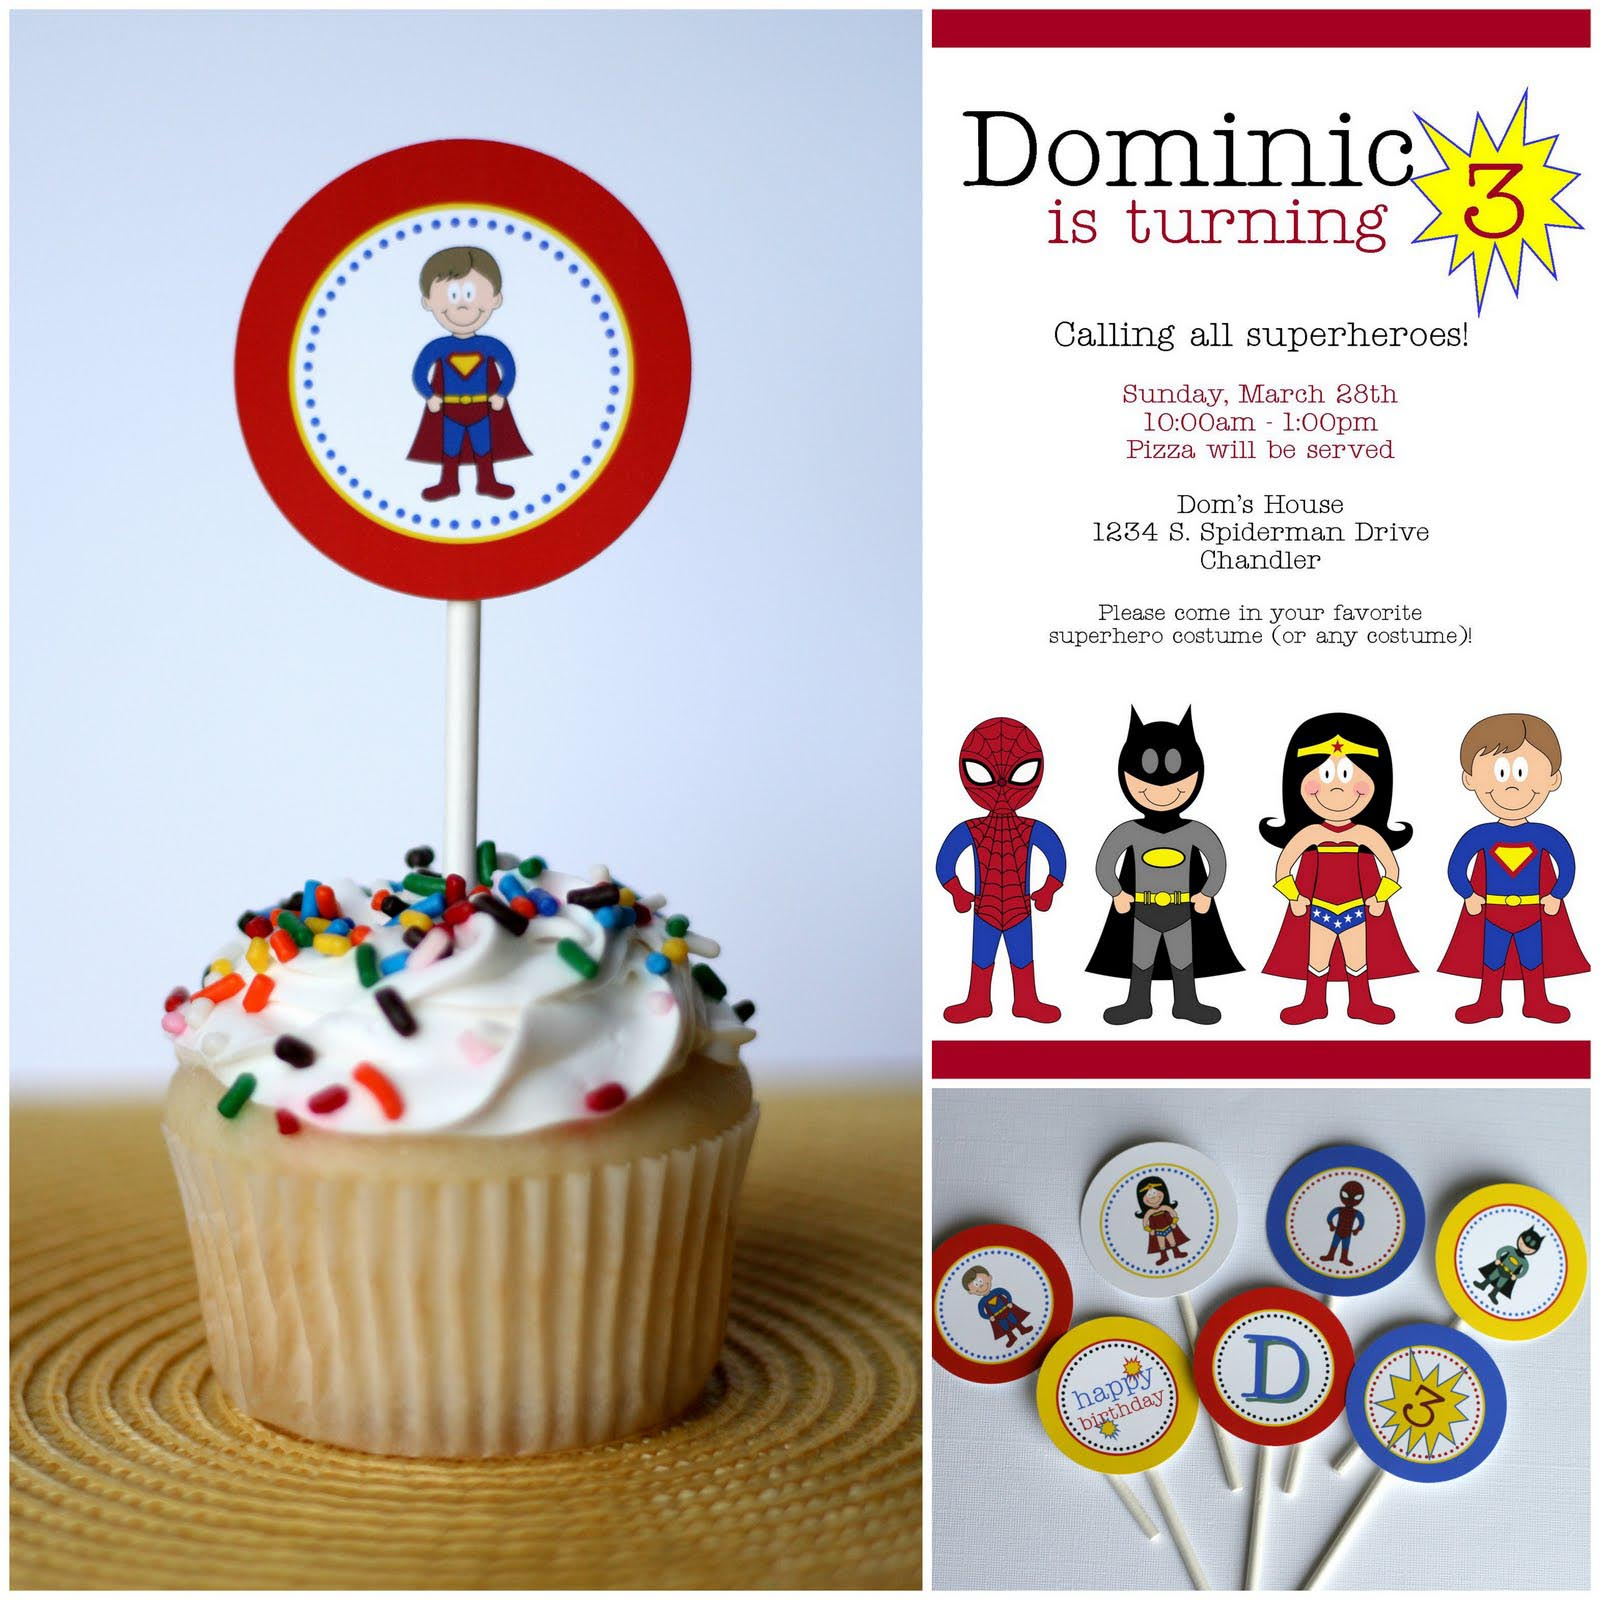 Superhero Birthday Party Invitation Wording | Home Party Ideas